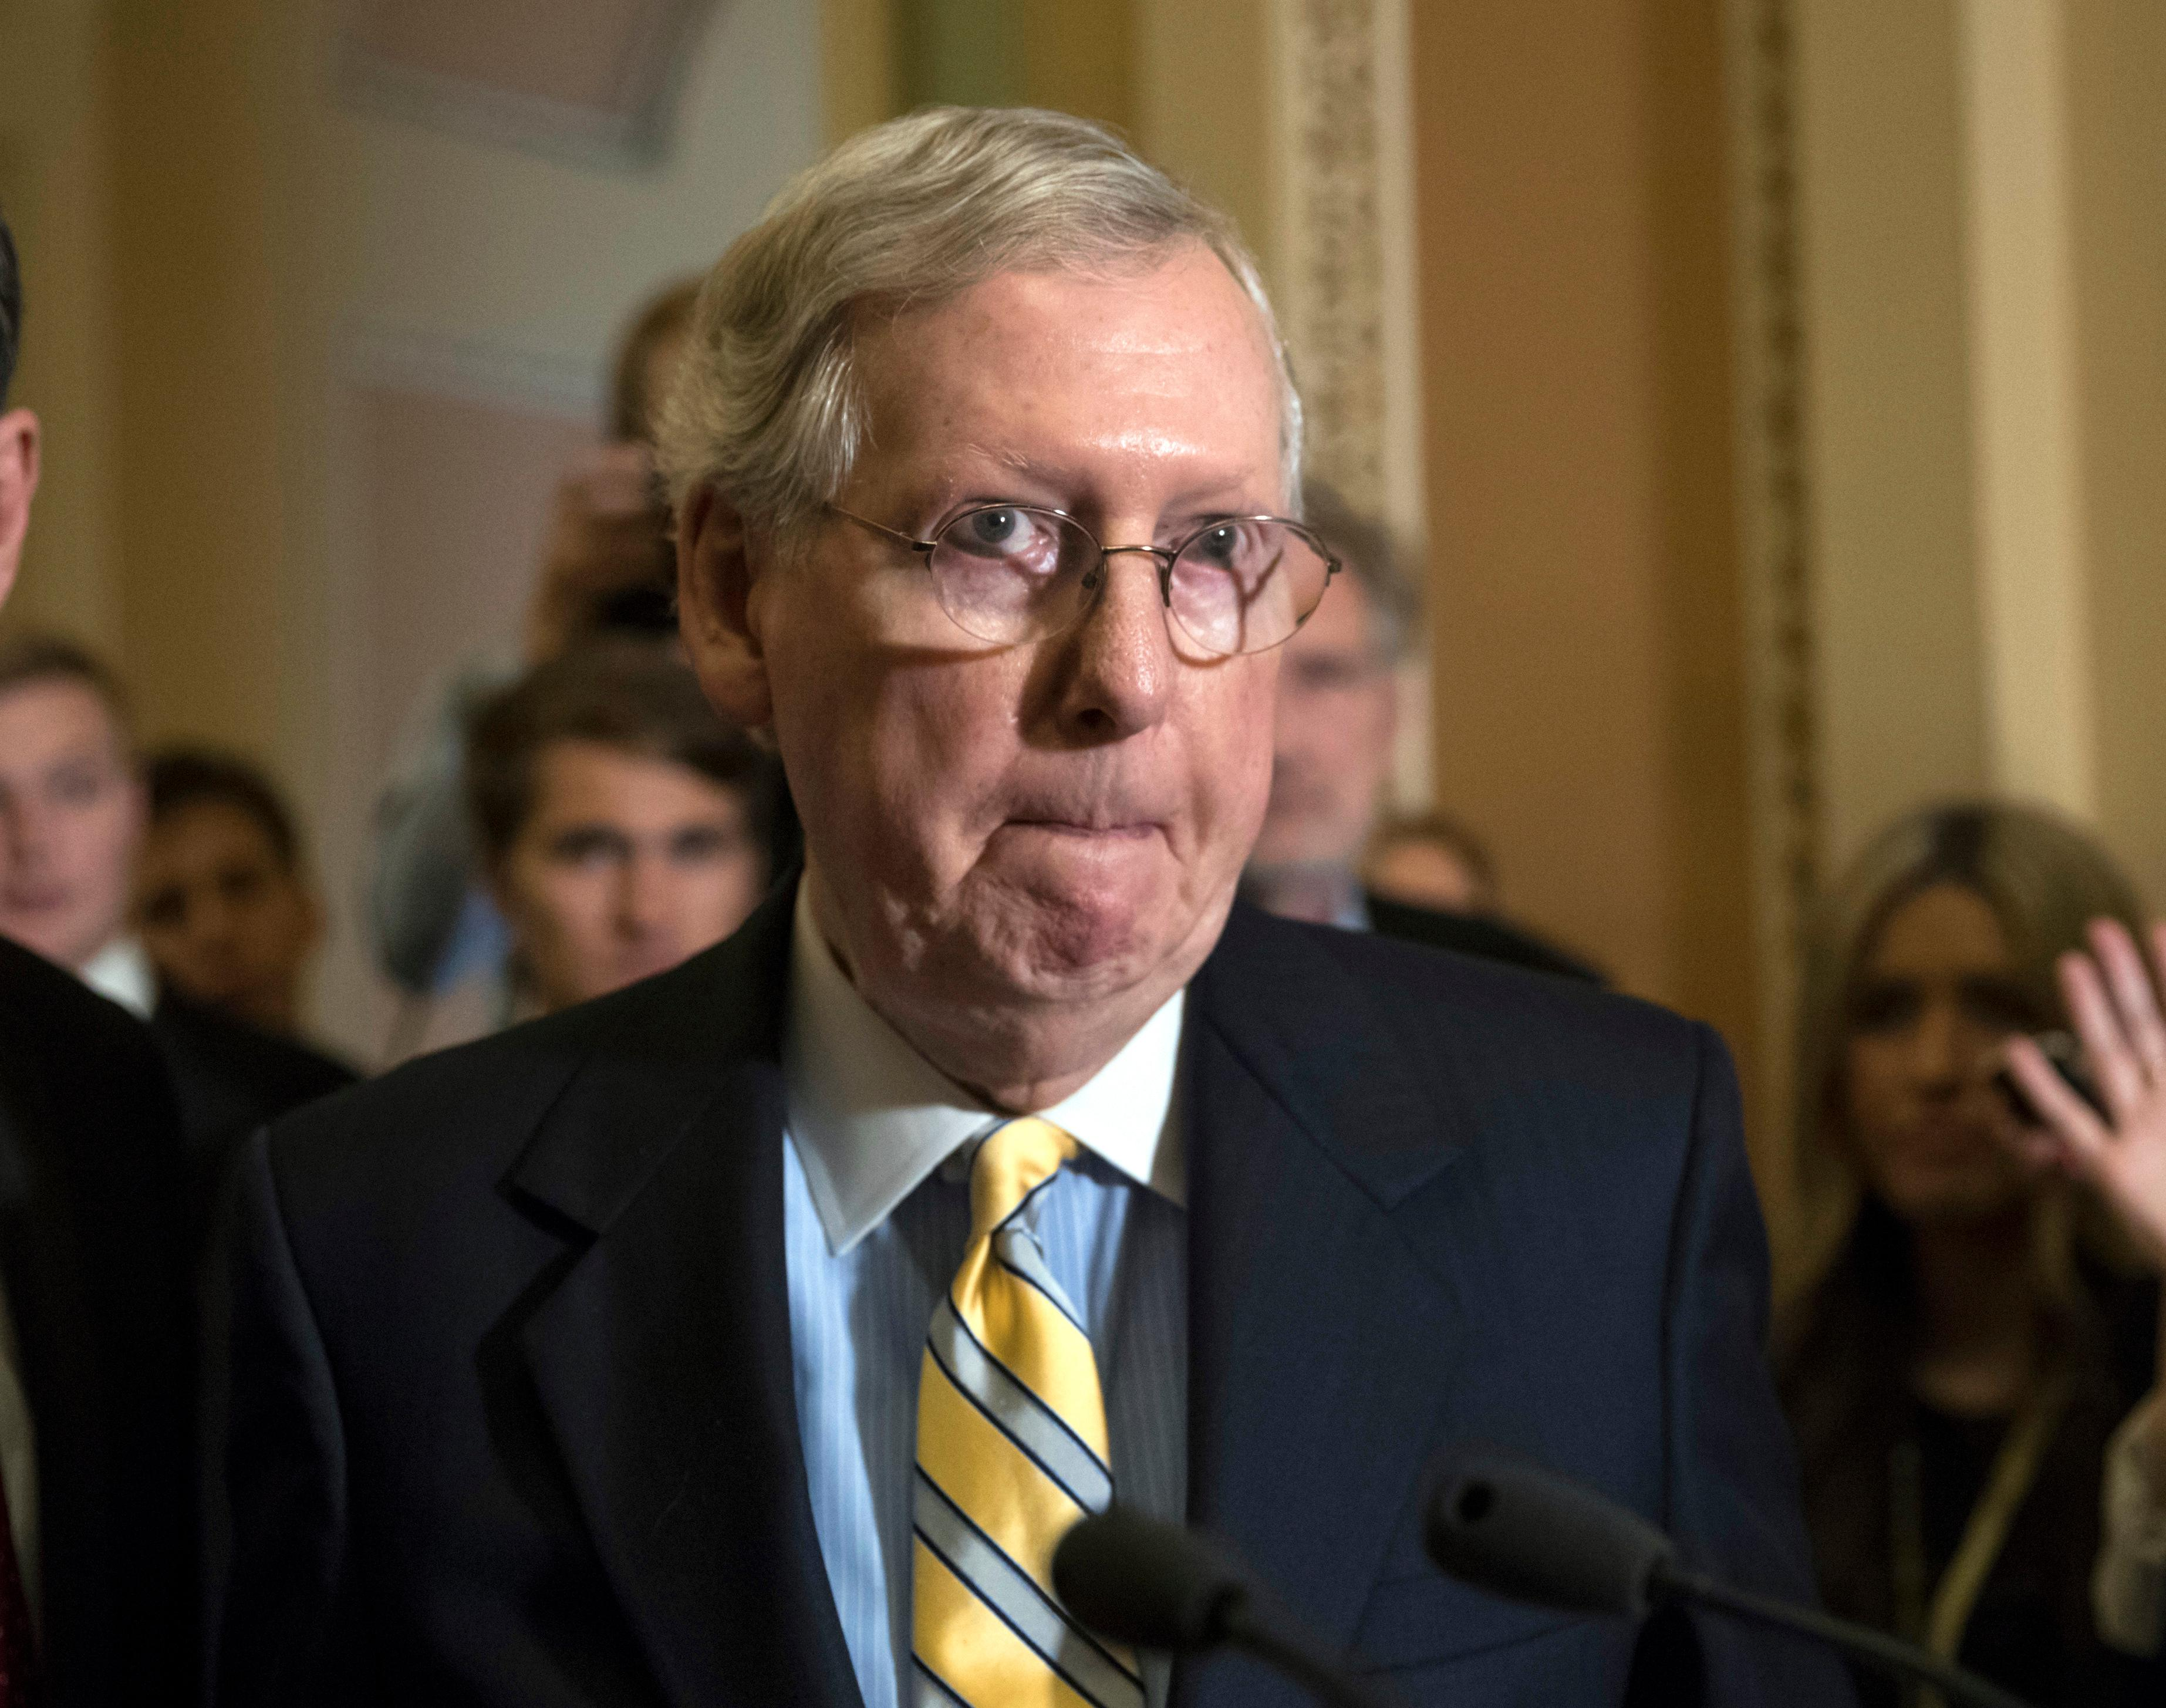 In this June 27, 2017, photo Senate Majority Leader Mitch McConnell, R-Ky., tells reporters he is delaying a vote on the Republican health care bill while GOP leadership works toward getting enough votes, at the Capitol in Washington. (AP Photo/J. Scott Applewhite)